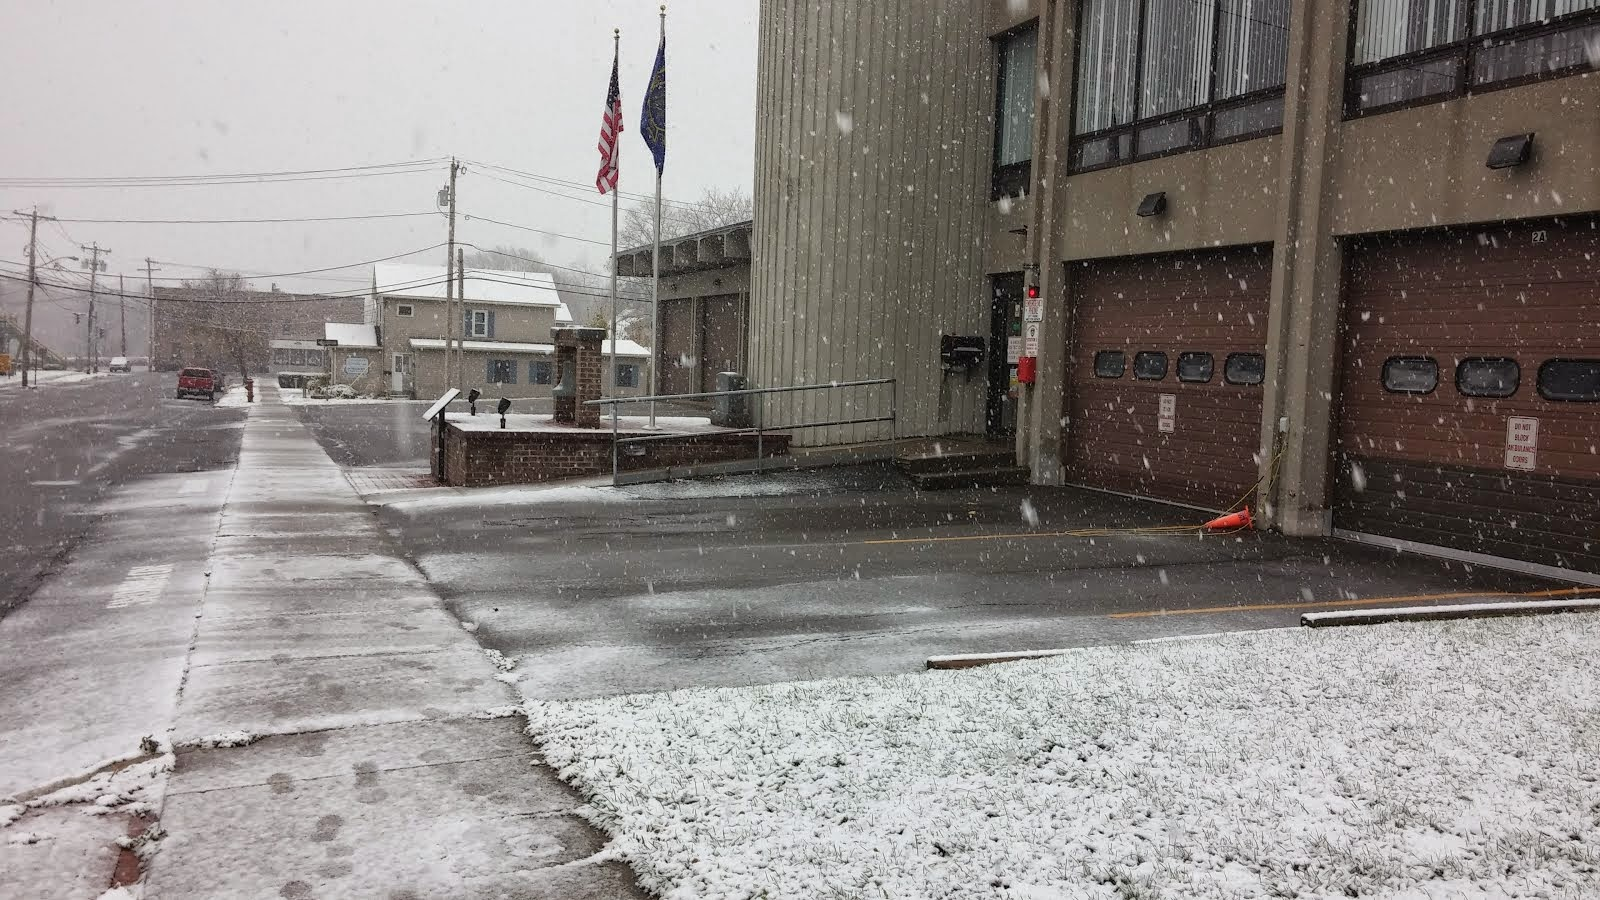 Snow in front of Fire Hall, Market Street, Brockport, NY 11/17/14